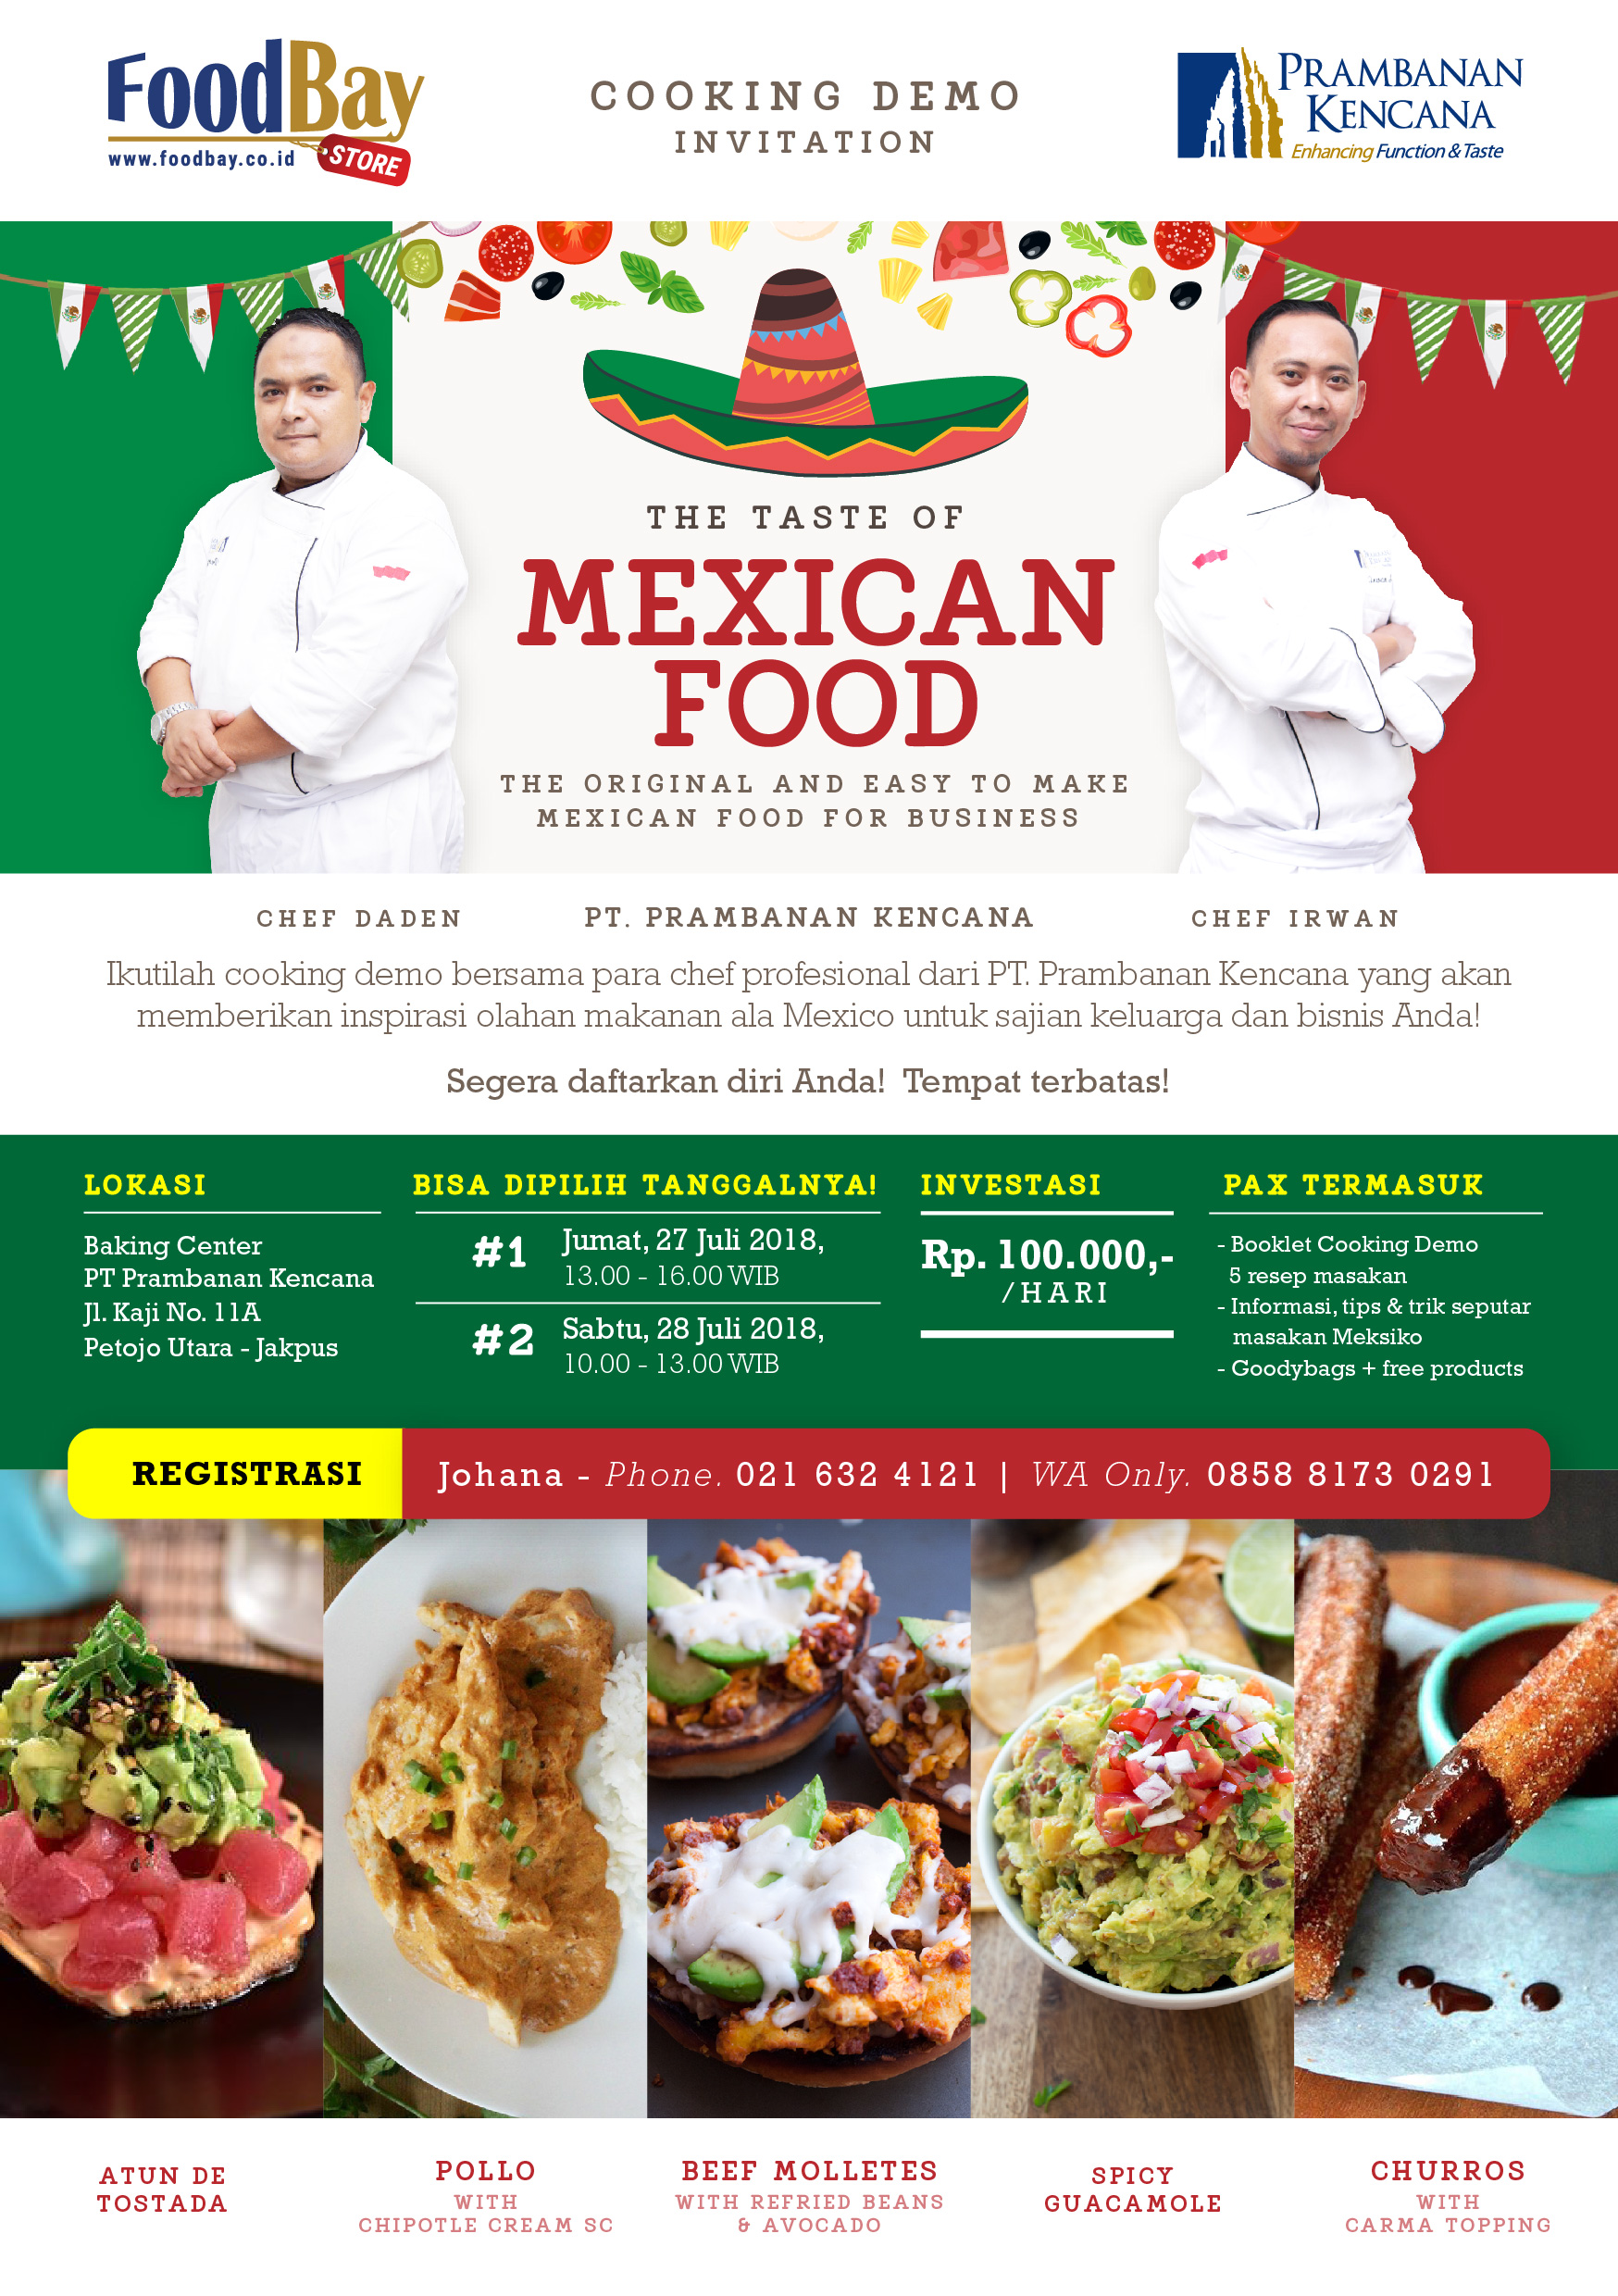 Cooking Demo The Taste of Mexican Food image